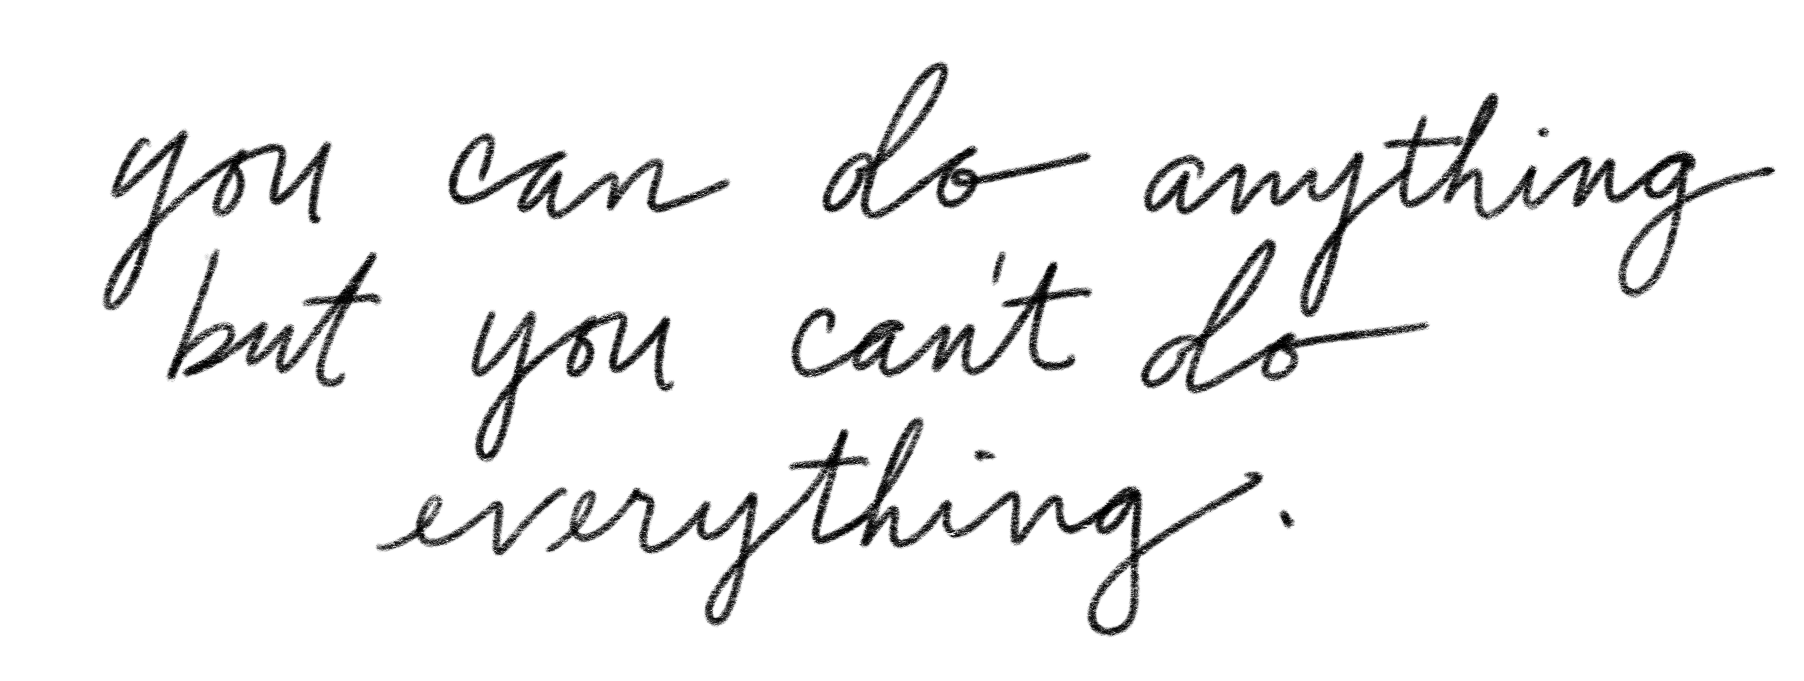 you-can-do-anything-put-you-cant-do-everything.jpg